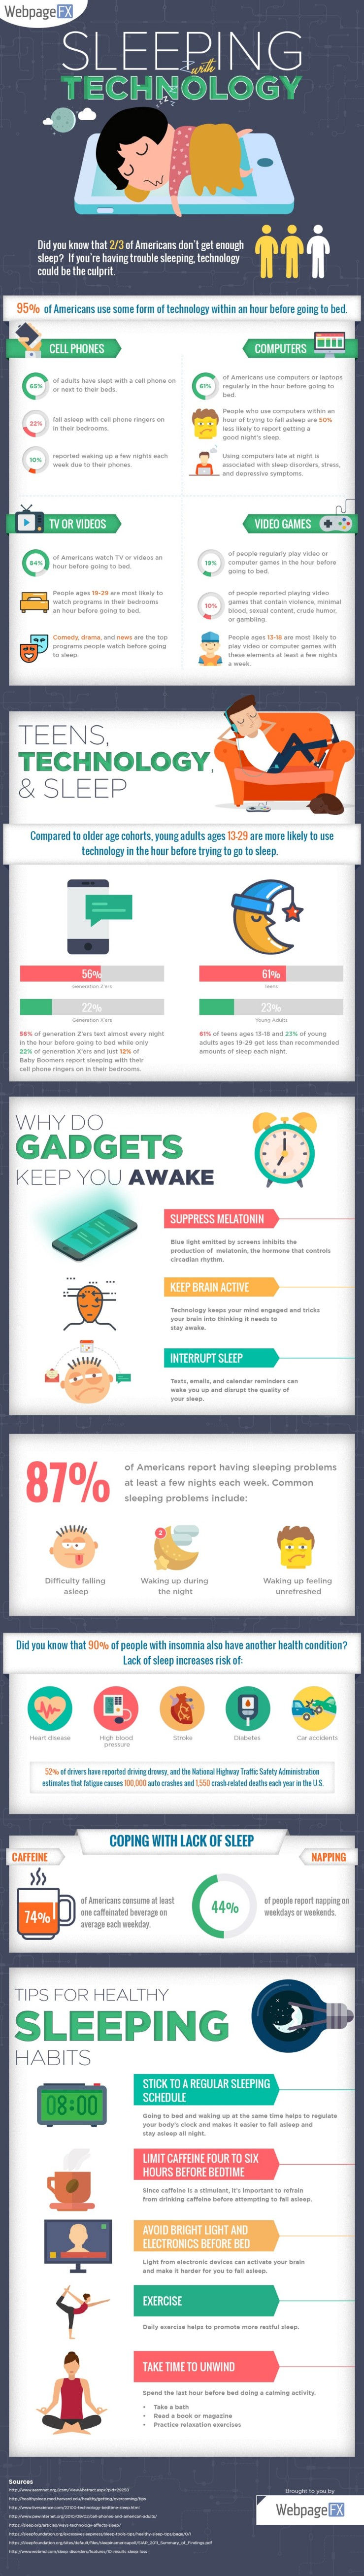 technology-and-sleep-infographic-1-1.jpg